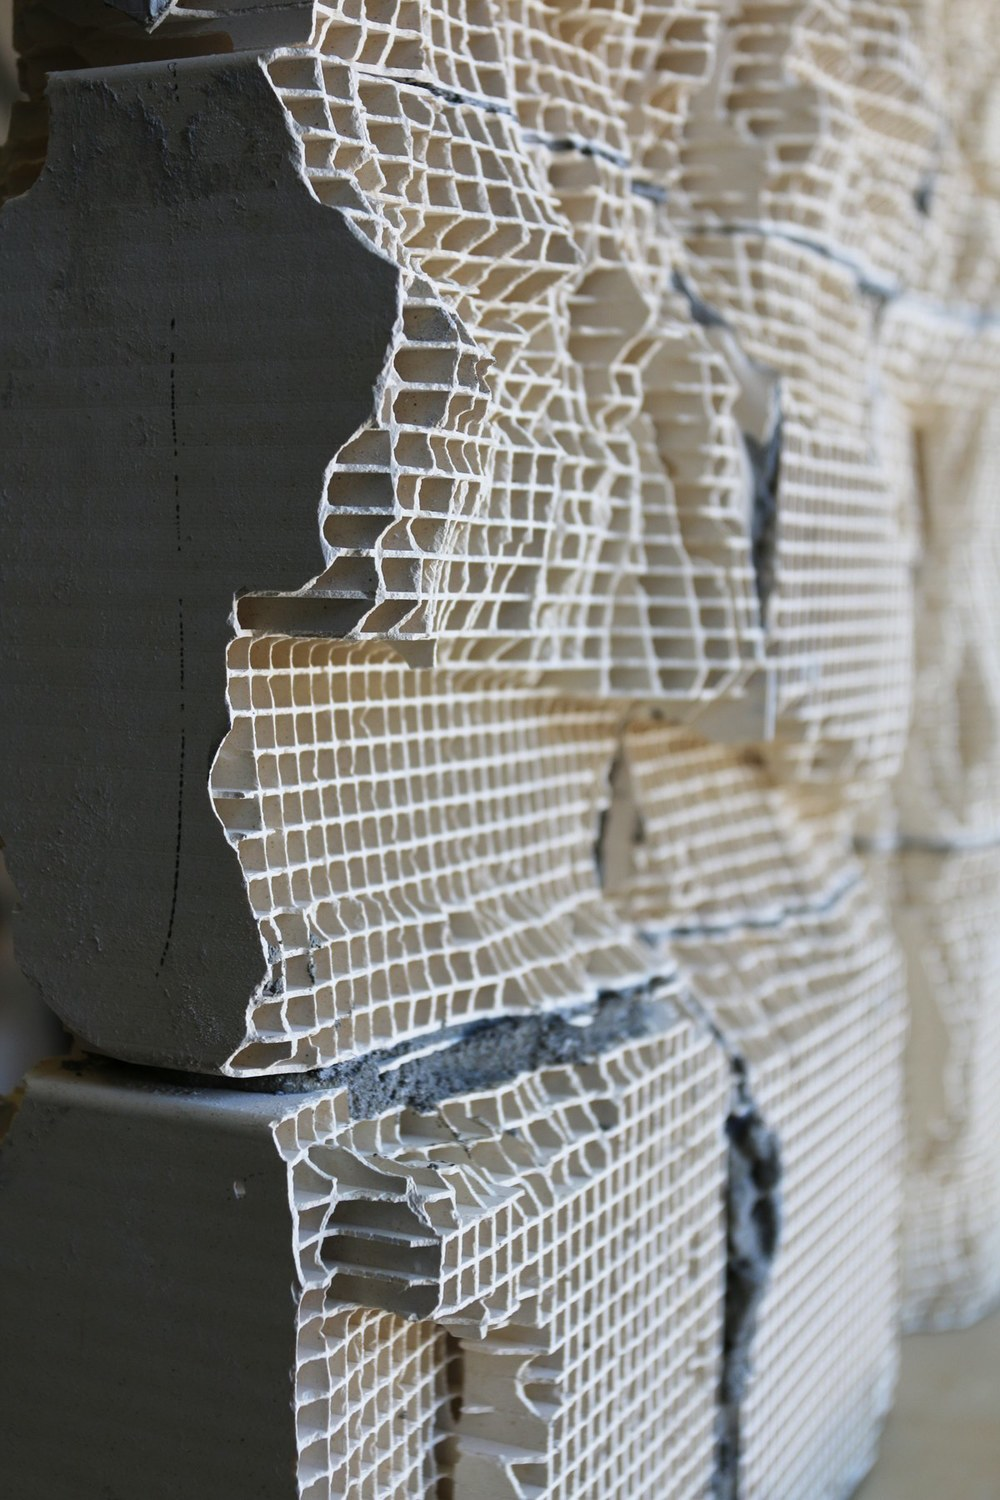 Studio detail of engineered ceramic work-in-progress